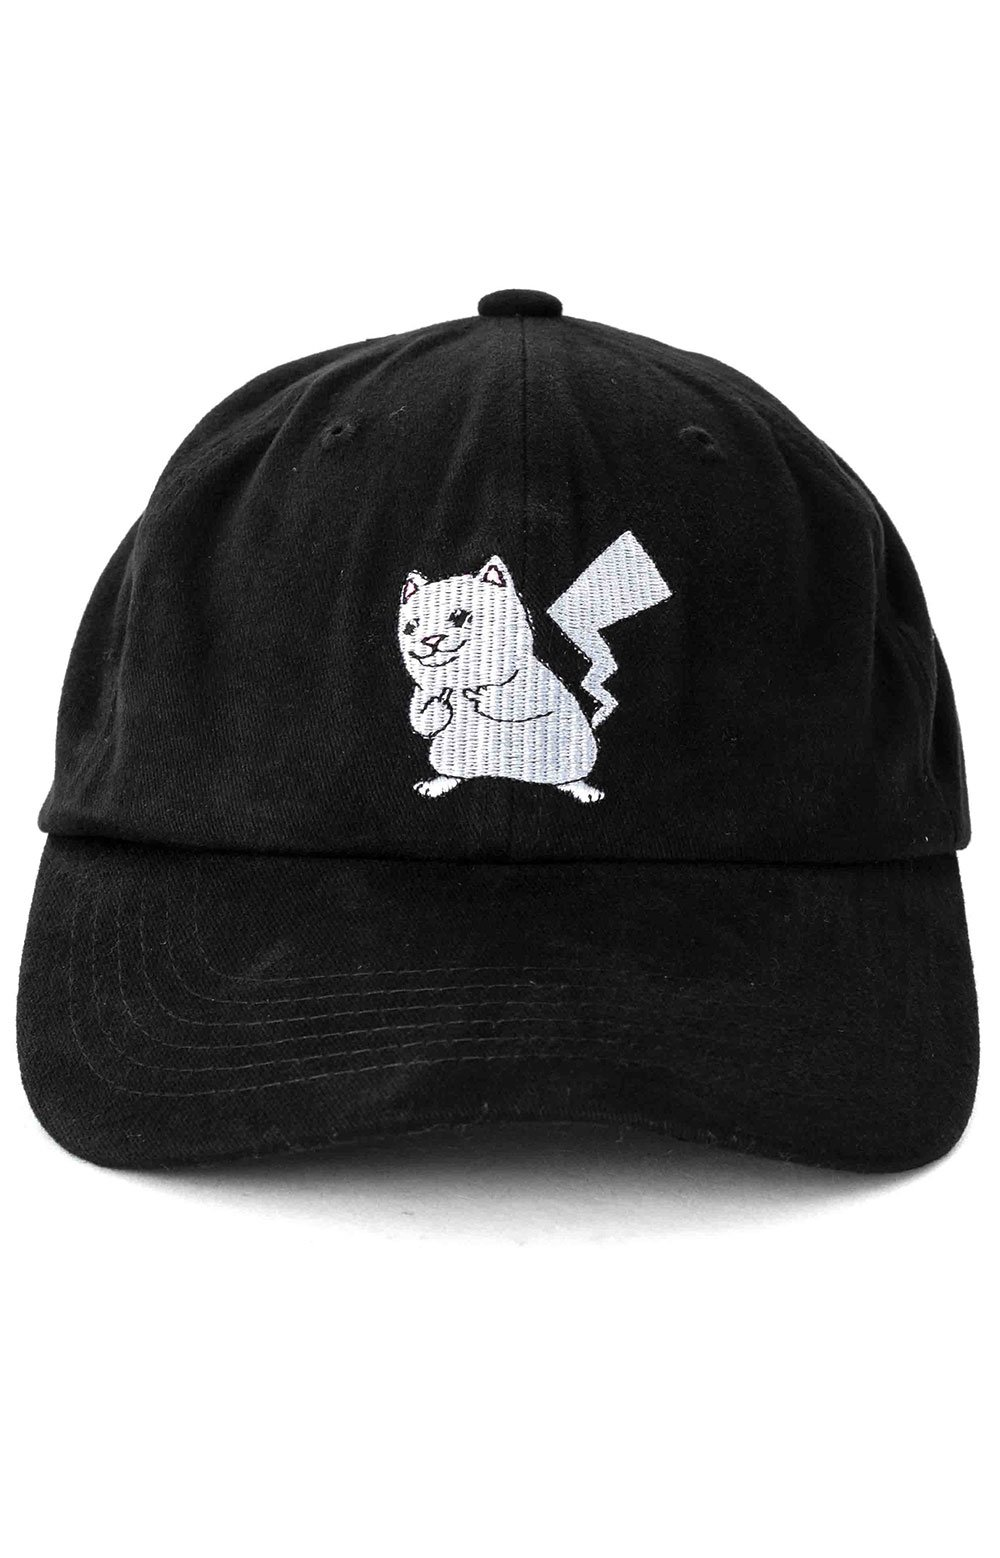 Catch Em All Strap-Back Hat - Black 2